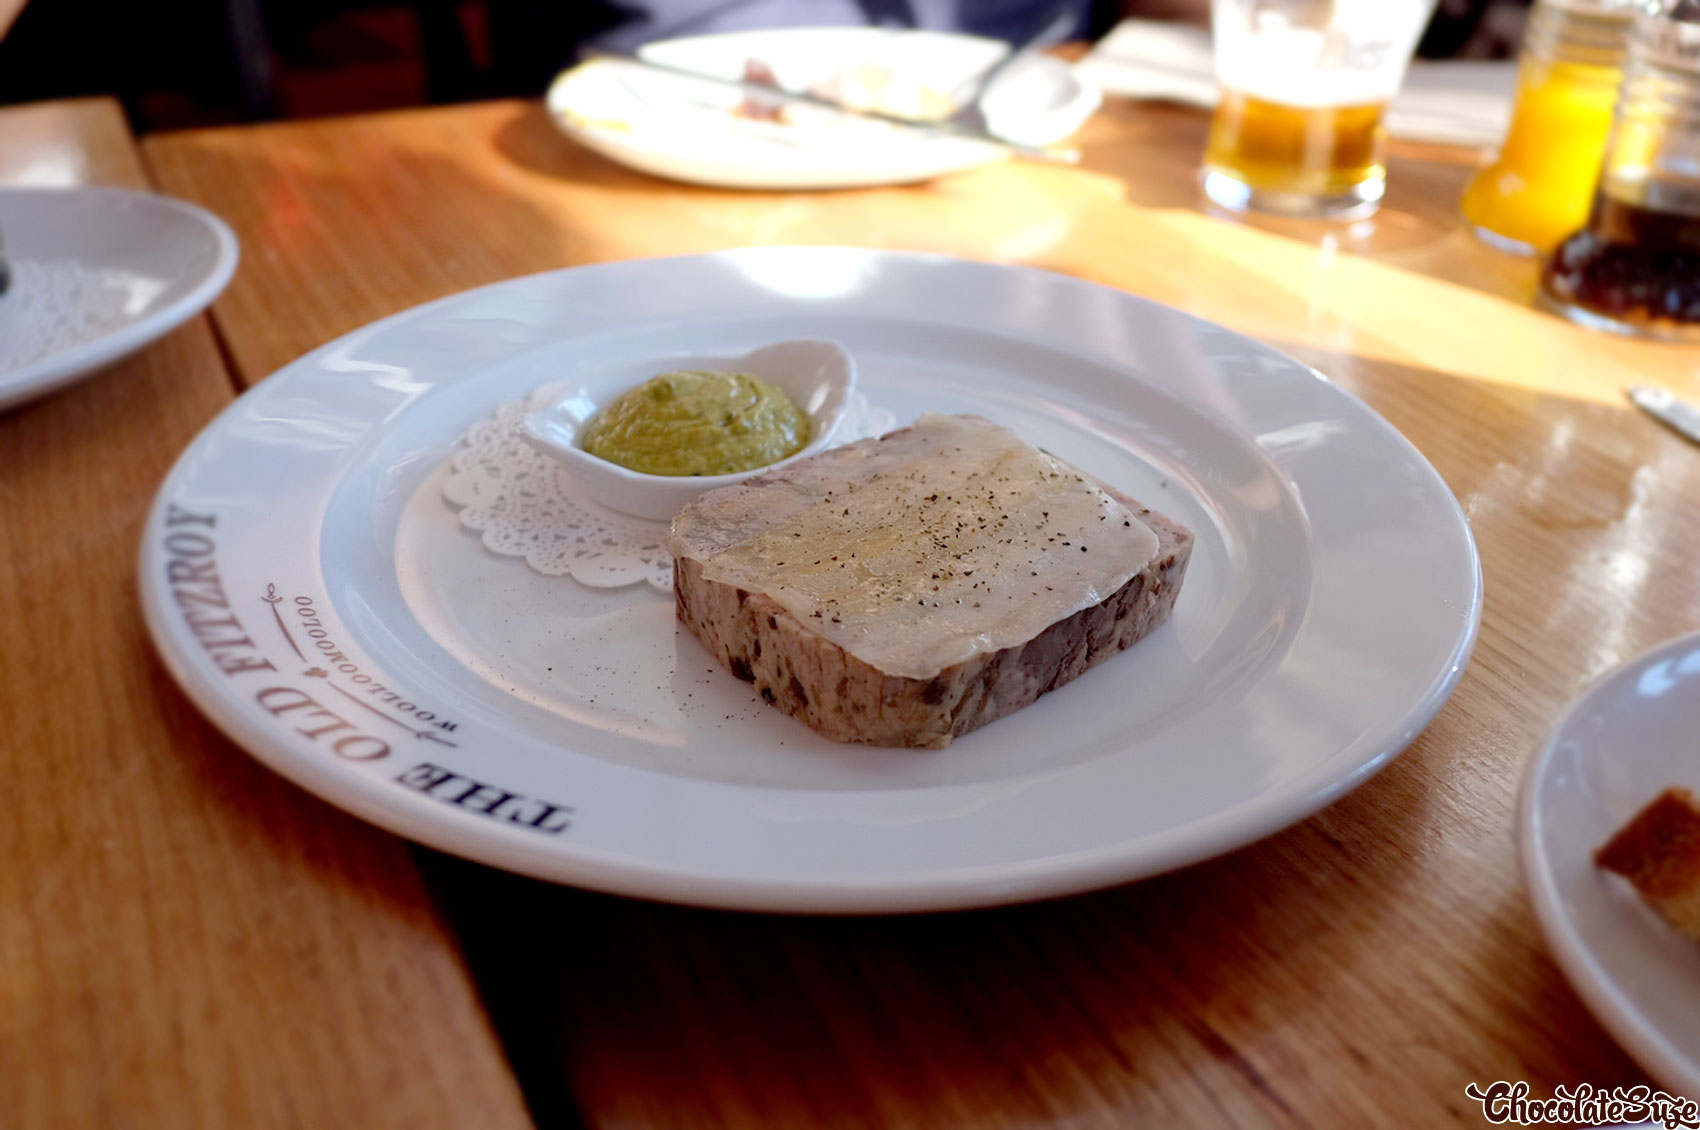 Chicken and lardo terrine at The Old Fitzroy Hotel, Woolloomooloo